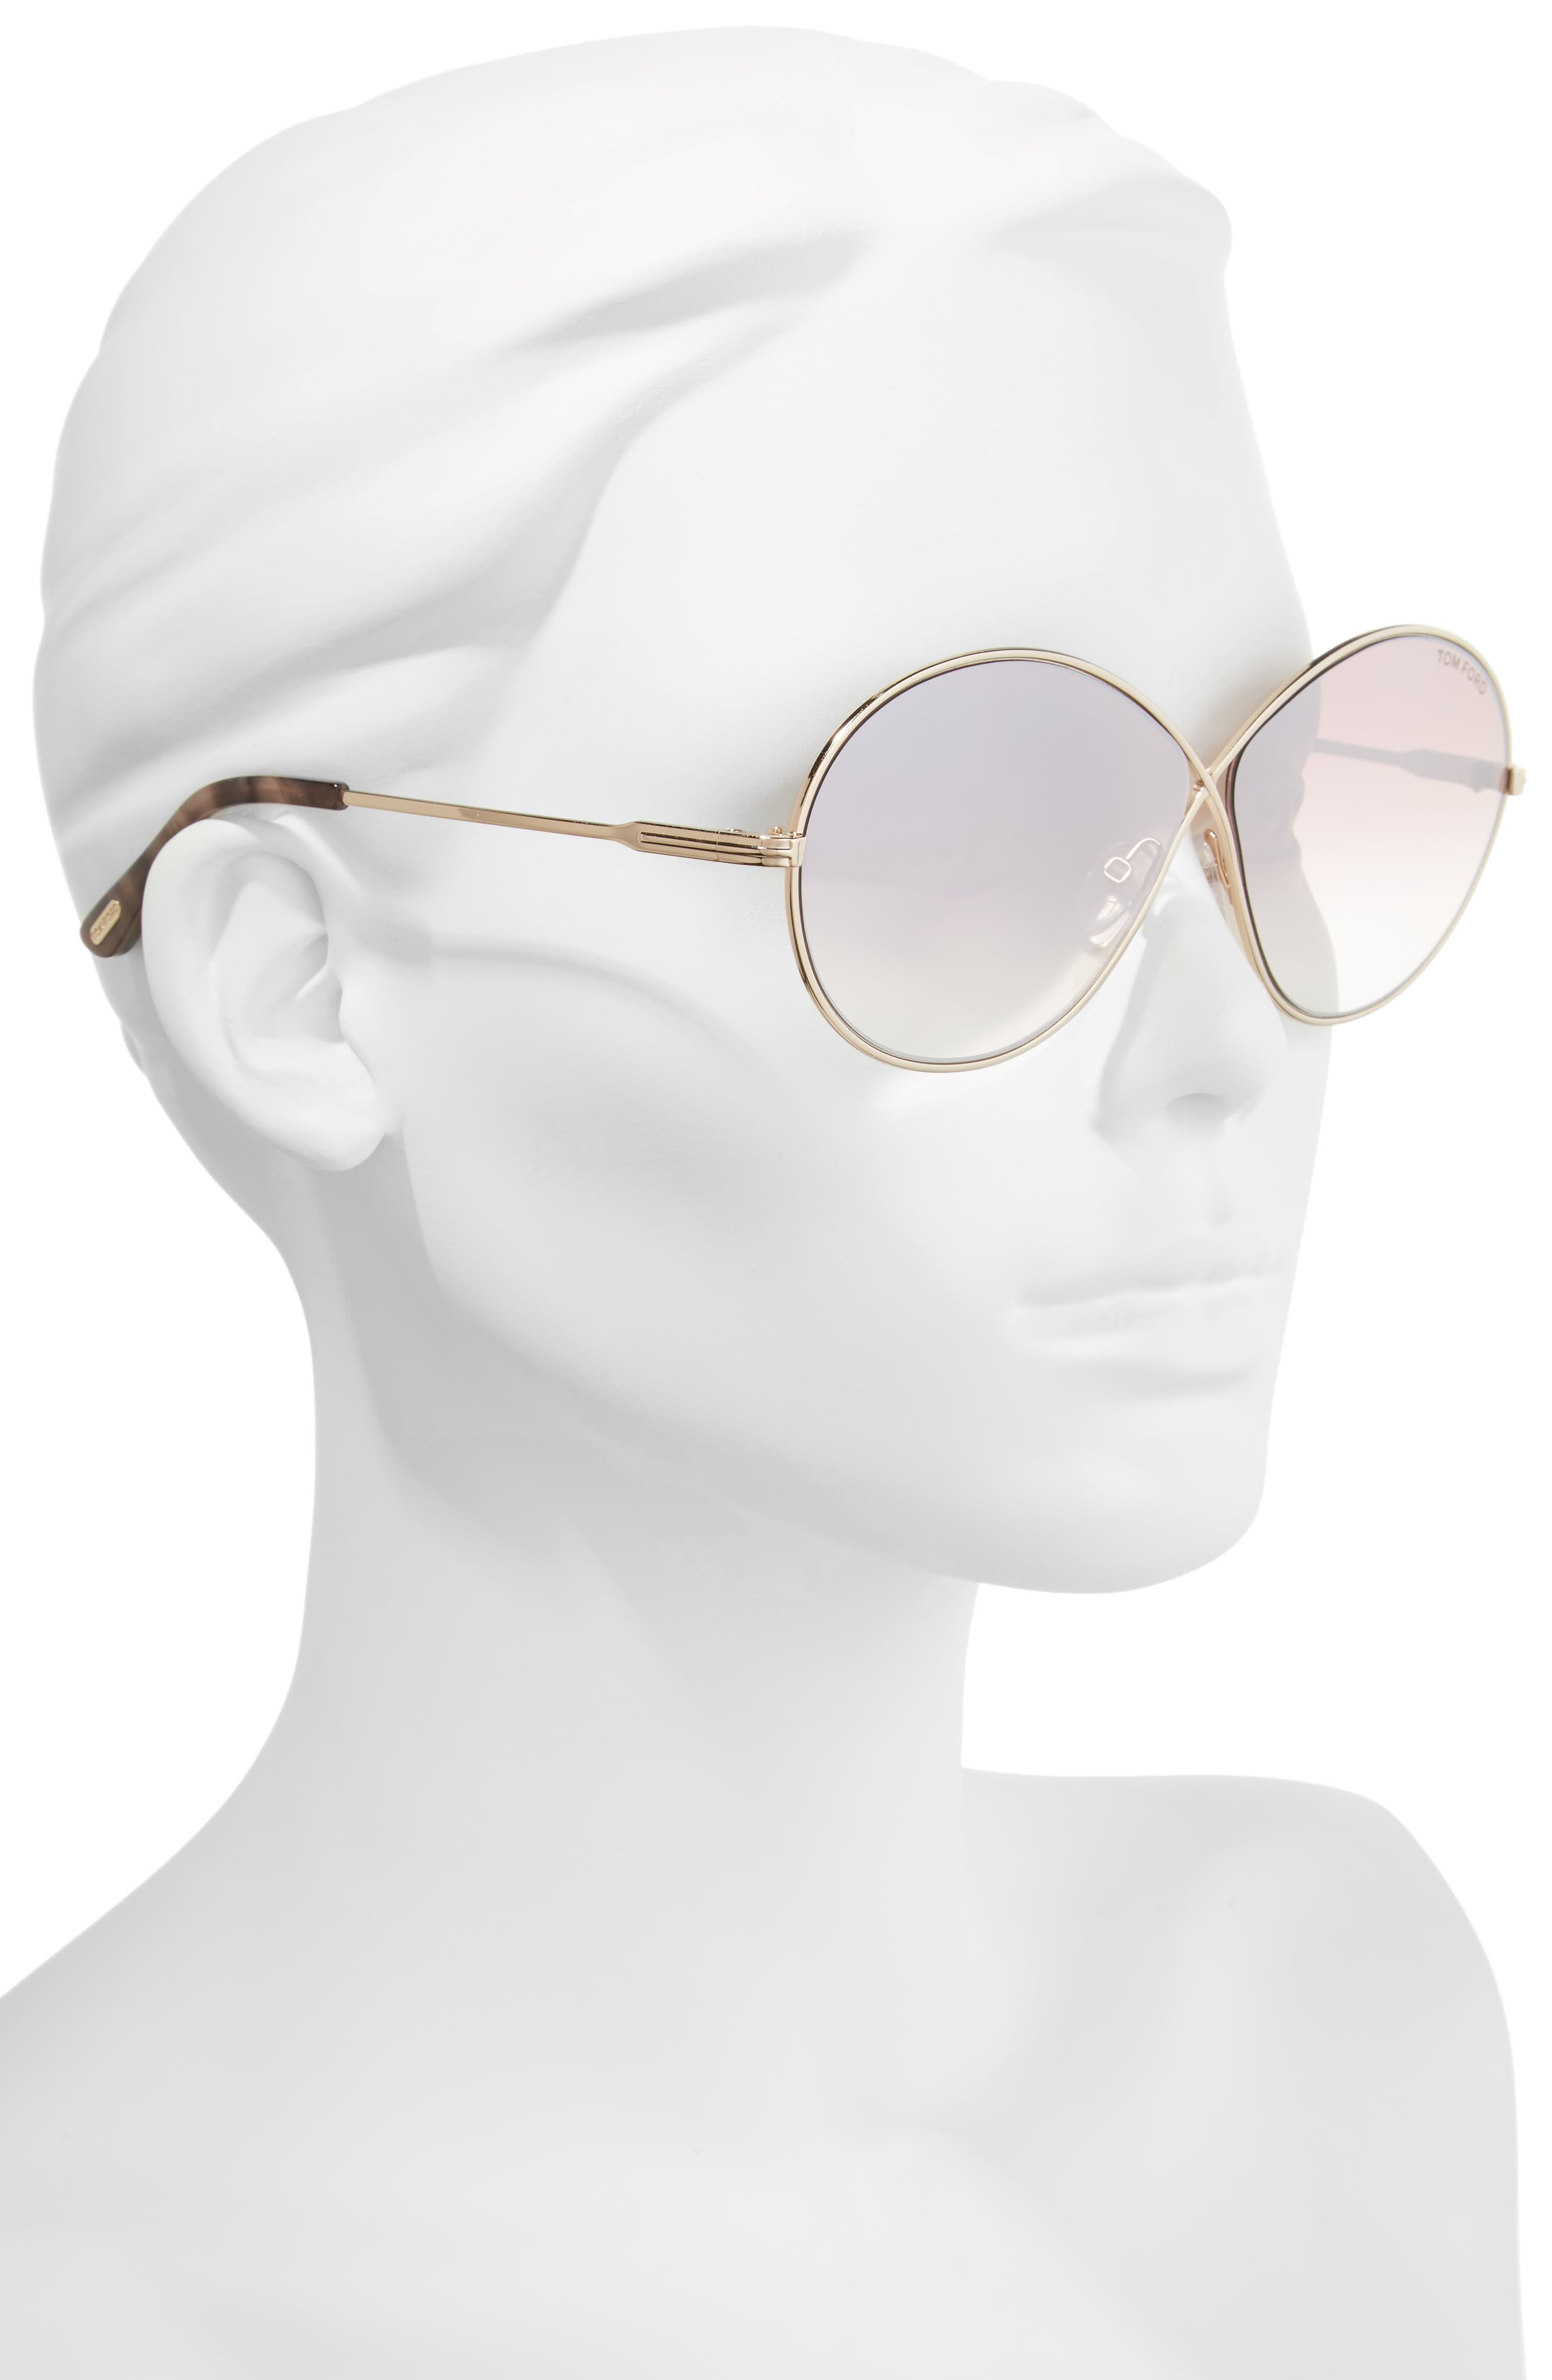 Alternate Image 2  - Tom Ford Rania 64mm Oversize Round Sunglasses